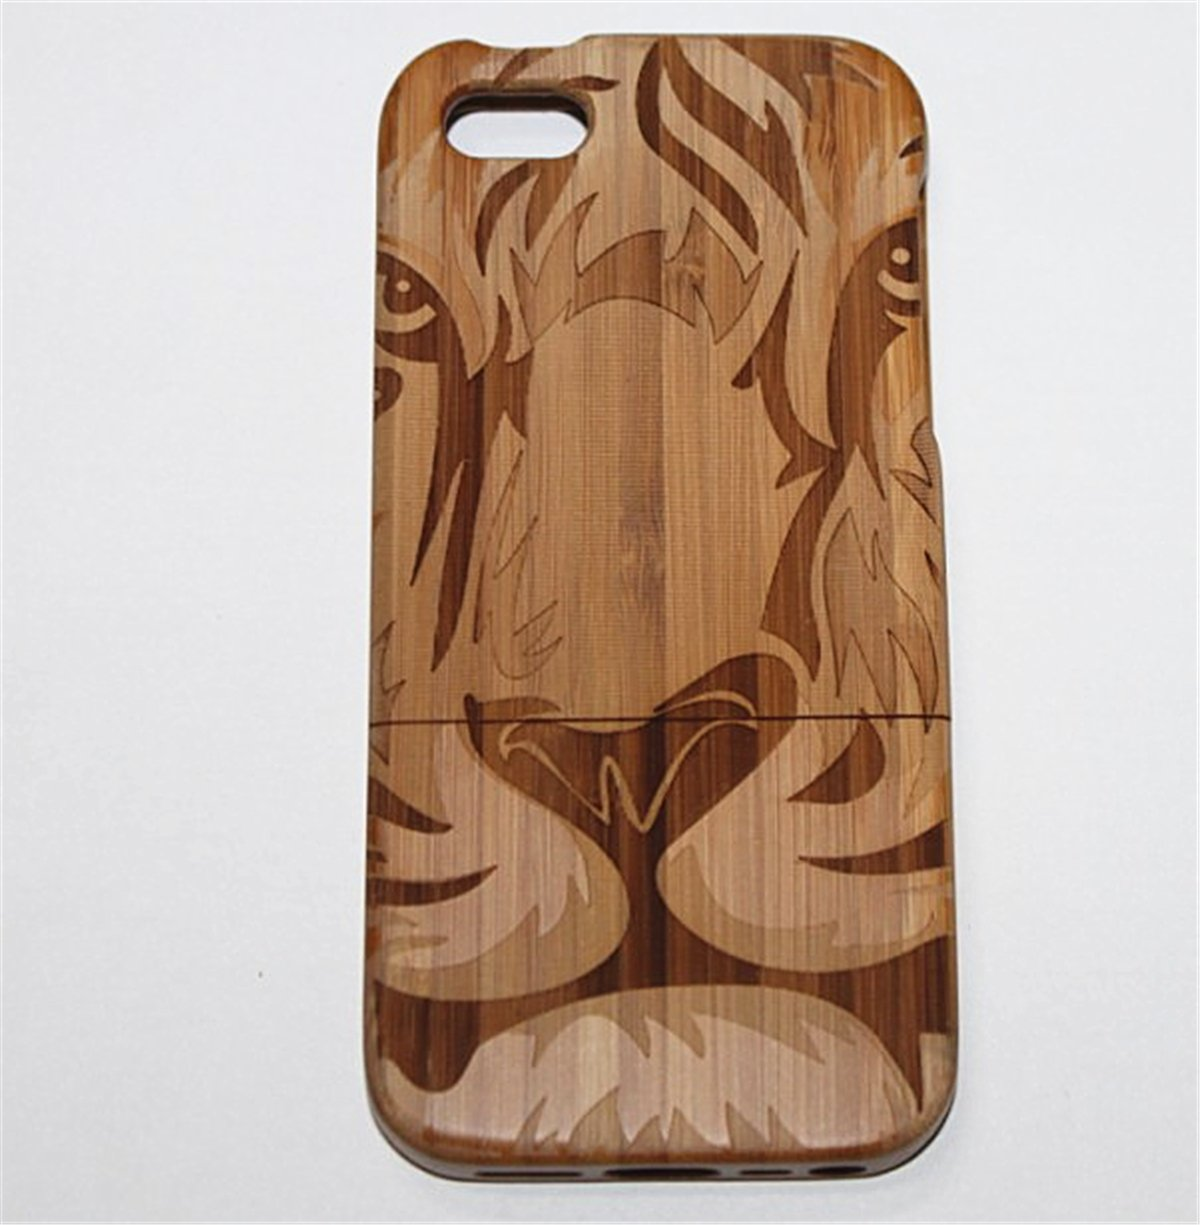 iPhone 6/6S Plus Case, Firefish Tiger Pattern Natural Handmade Hard Wood Case Cove With Laser Engraved Shock & Scratch Protective For iPhone 6/6S Plus ( With A Stylus) -Tiger